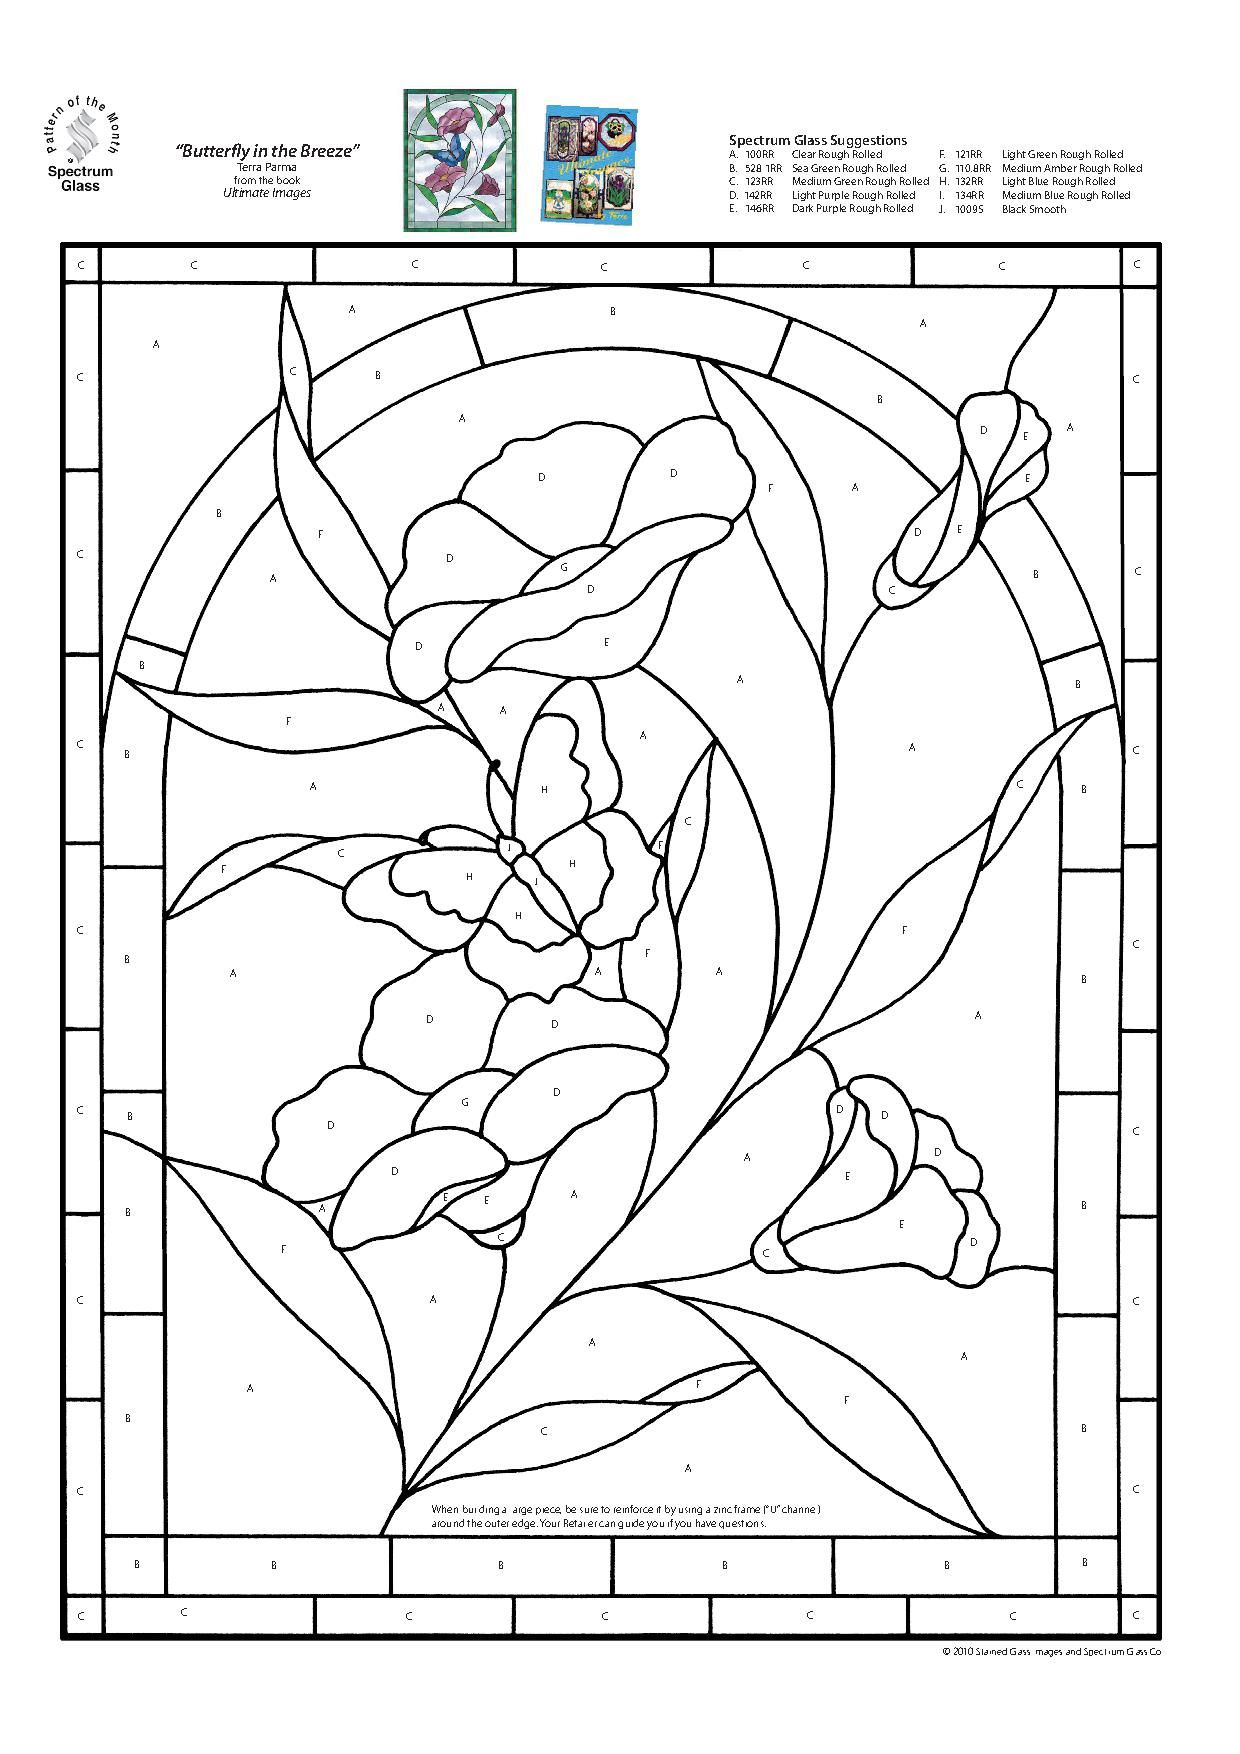 stained glass spectrum pattern pergamano pinterest glass